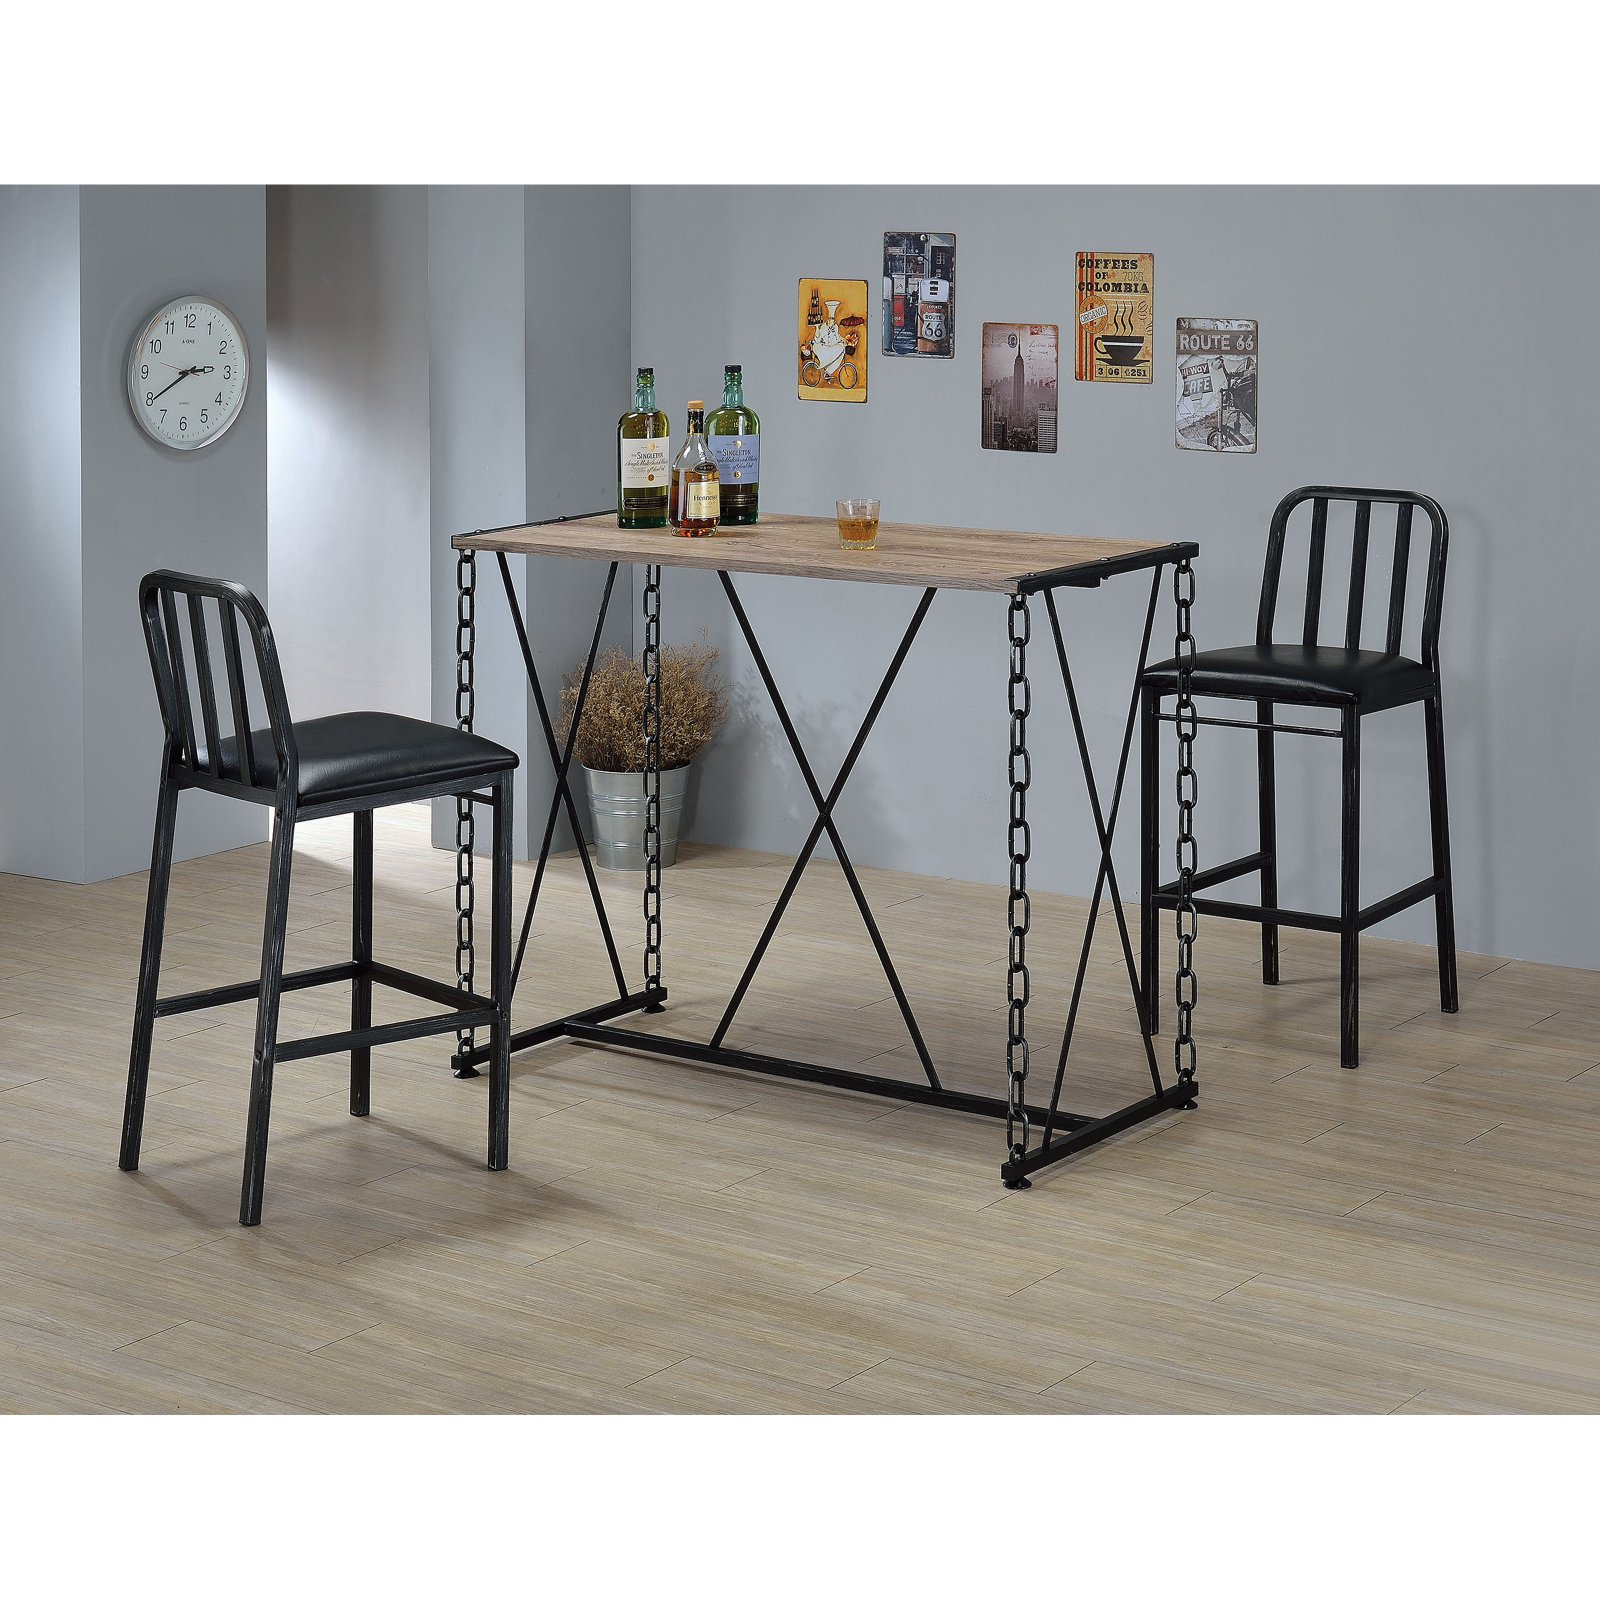 ACME Jodie Bar Table, Rustic Oak and Antique Black